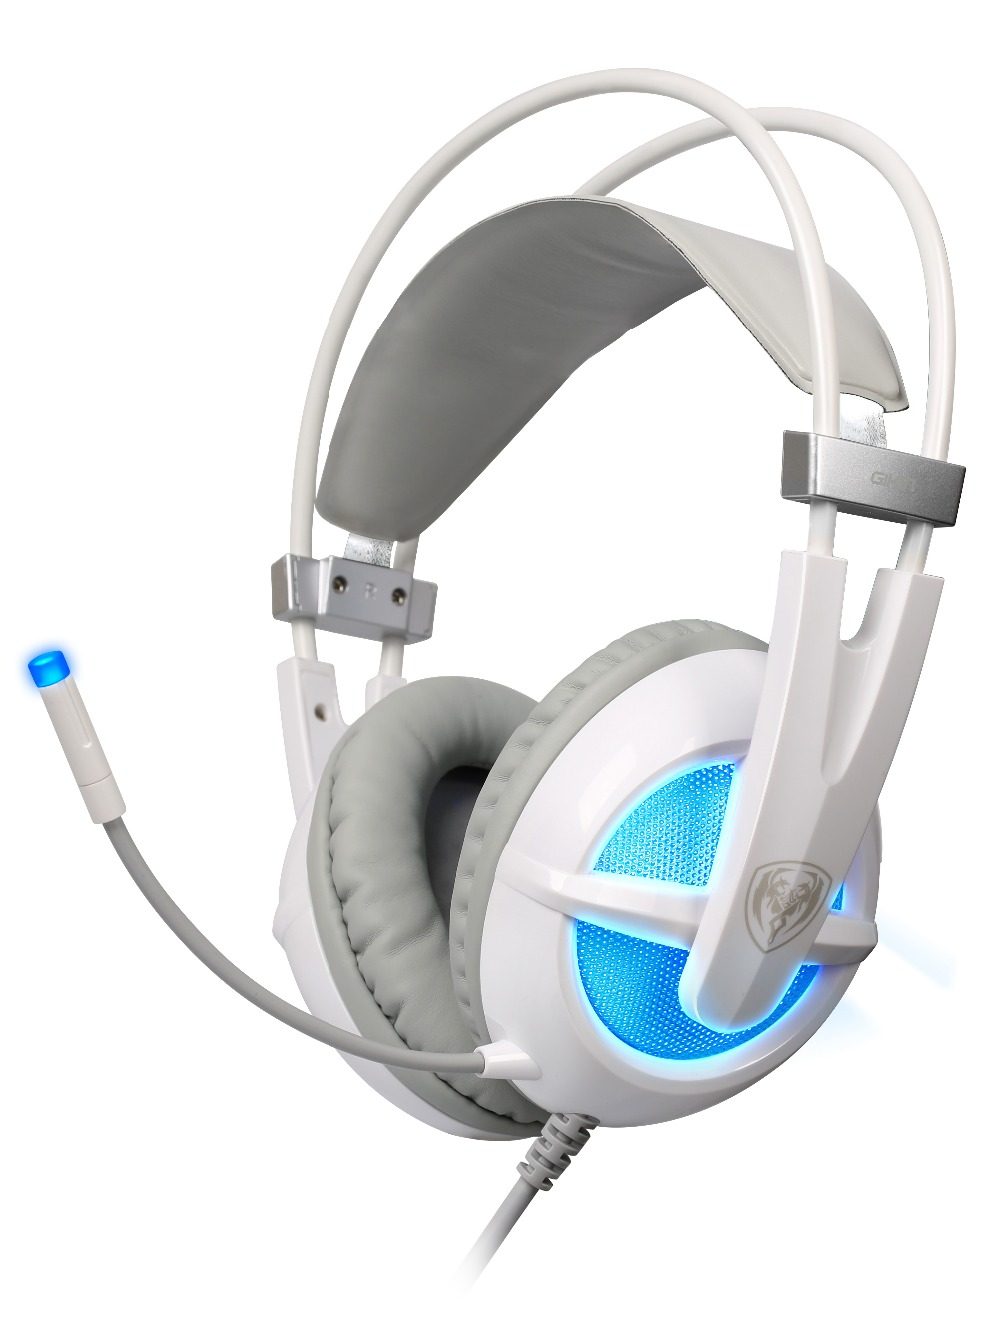 10pcsSomic G938 Gaming Headset Deep Bass Stereo SurroundGame Headphone with Mic and Volume Control for PC